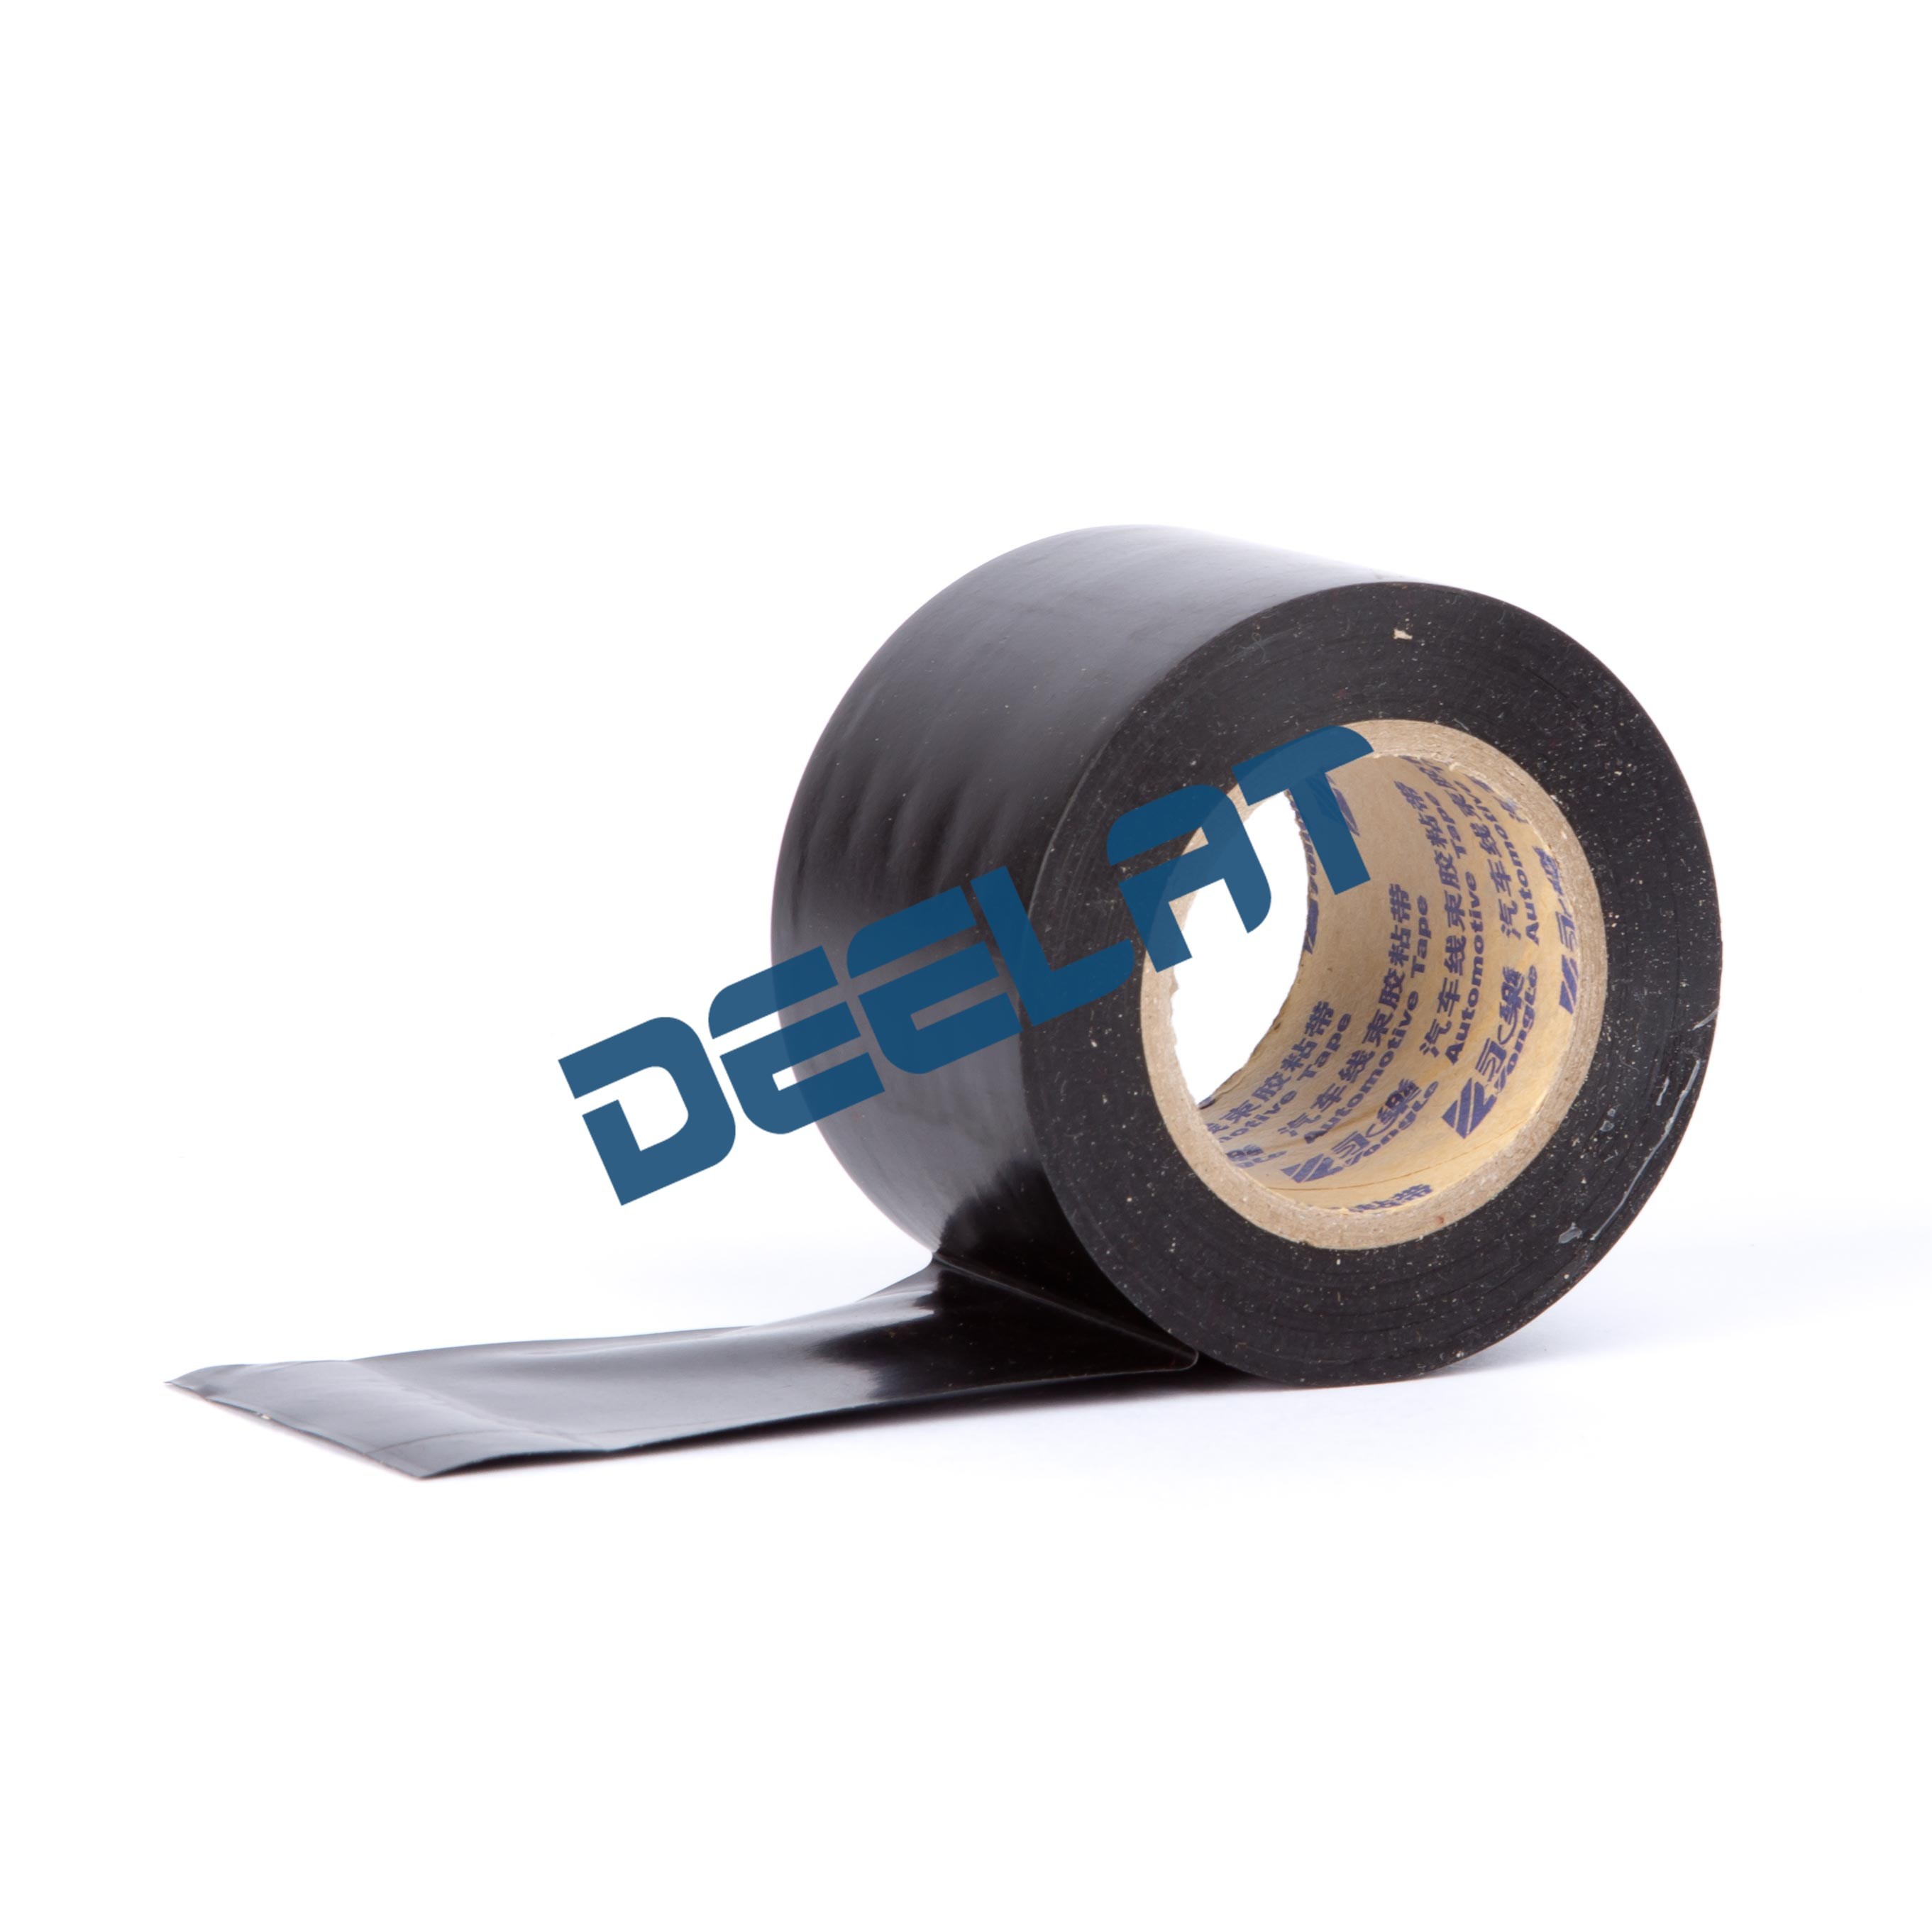 Auto IWre Harness Tape deelat blog automotive wire harness tape uses, types and auto wire harness tape at gsmx.co